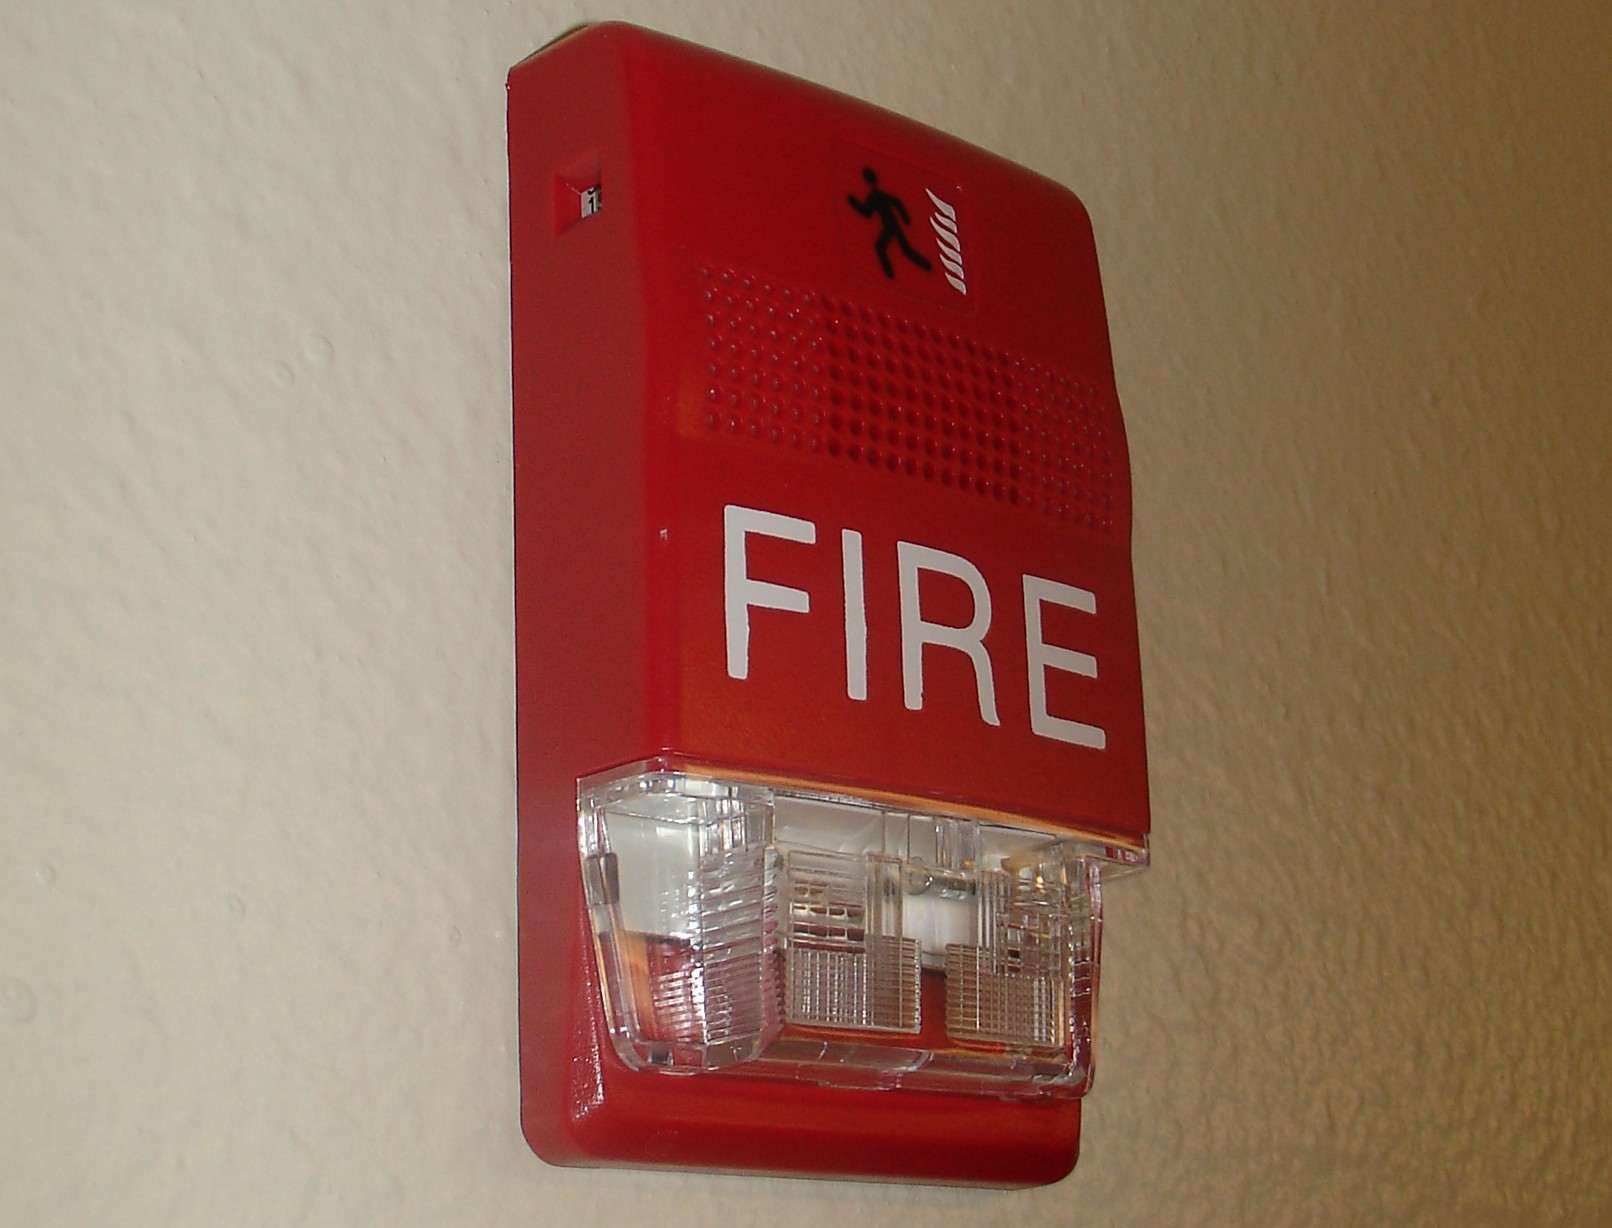 Fire protection alarm system